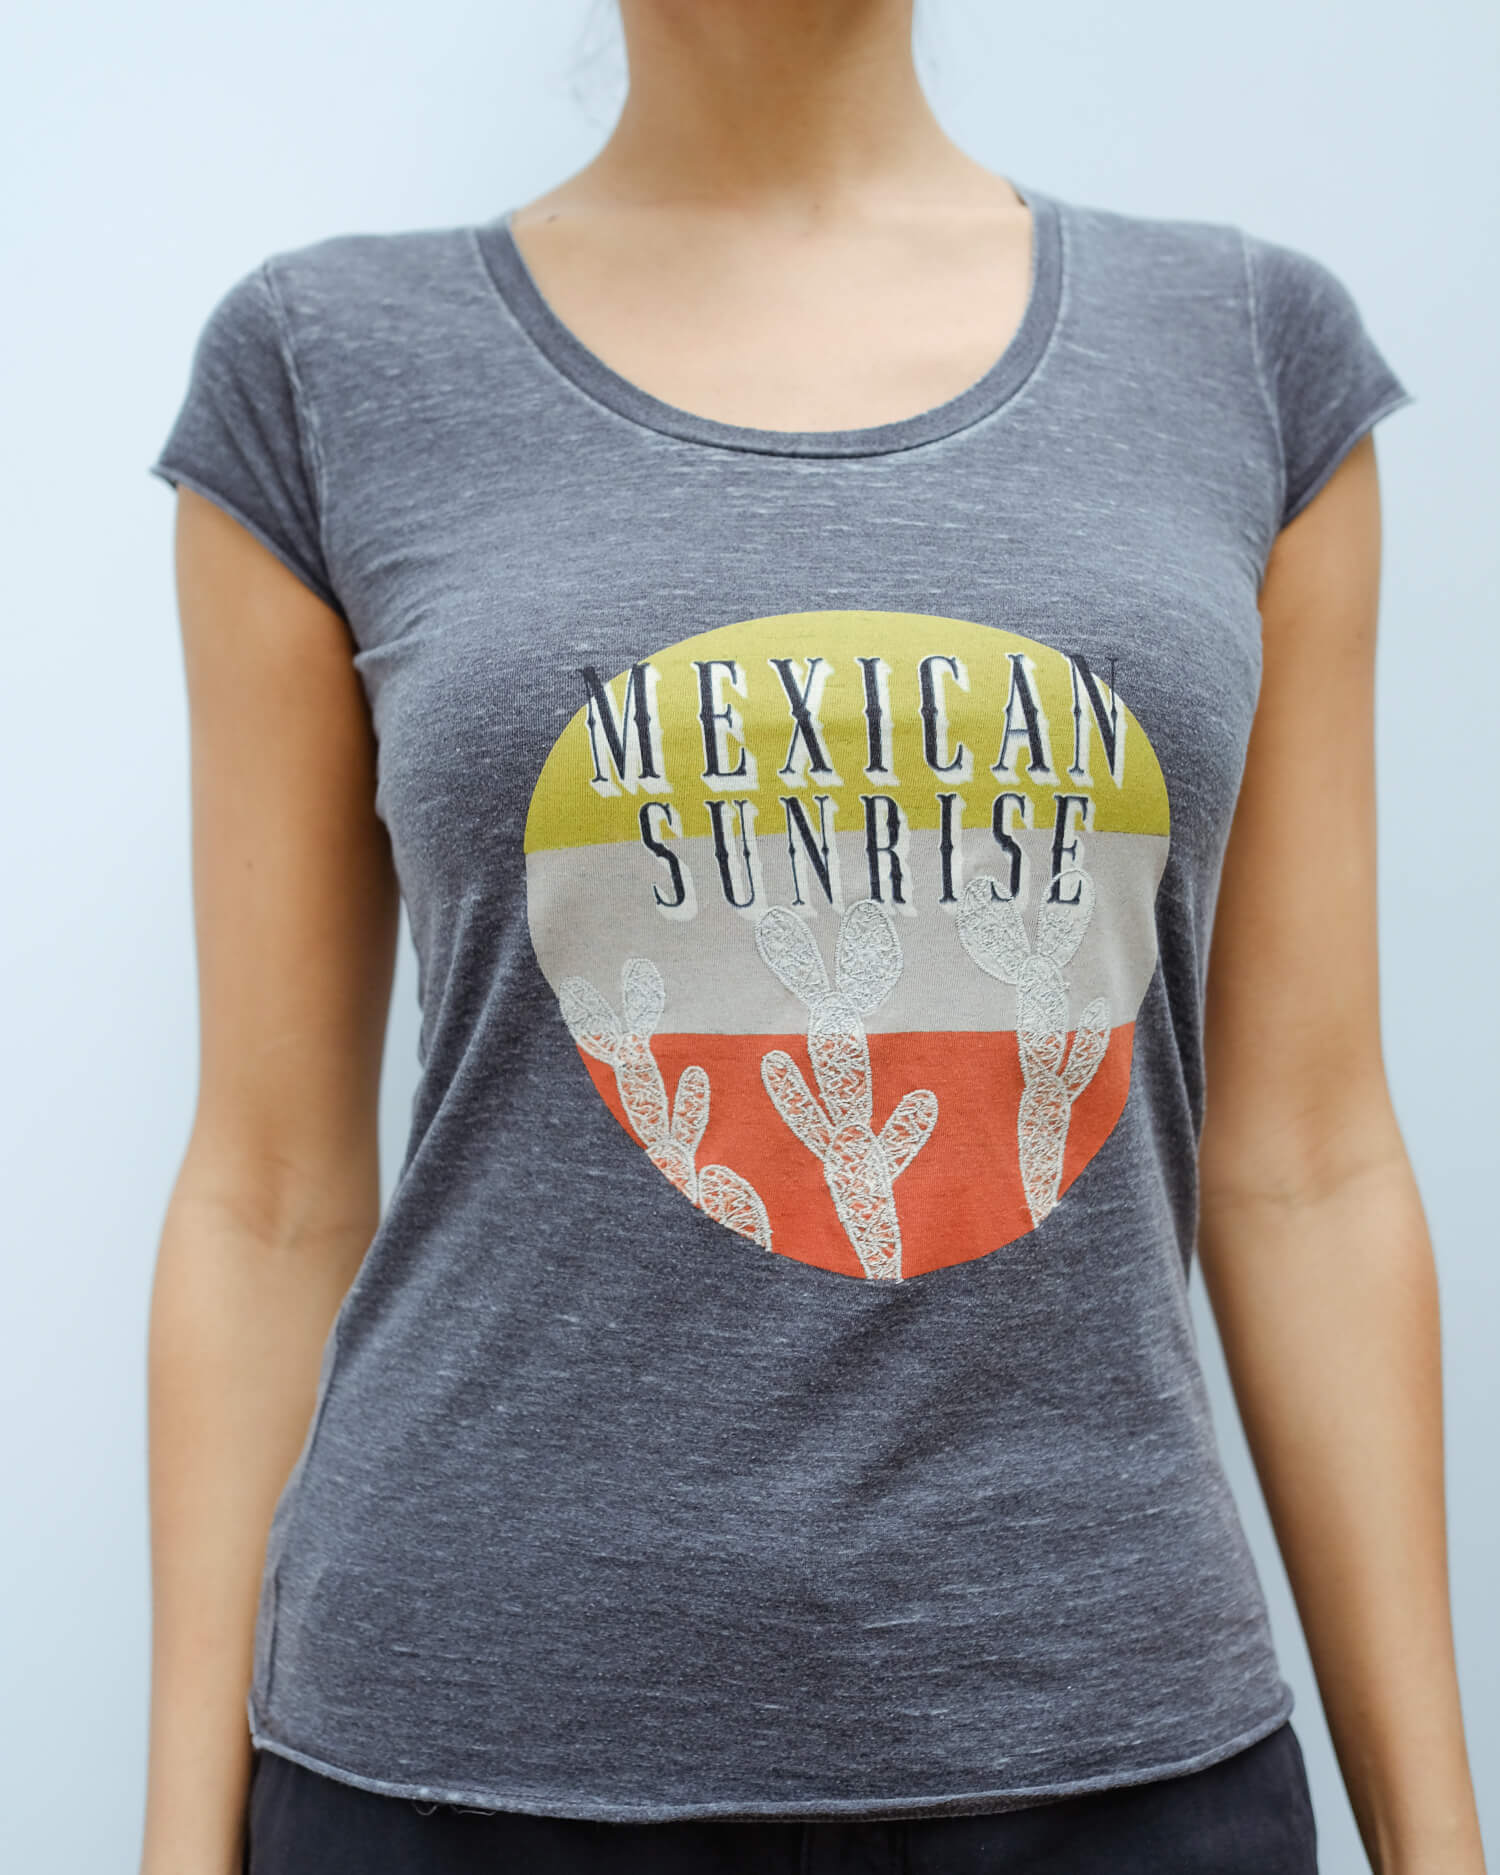 FIVE Mexican sunrise tee in carbon